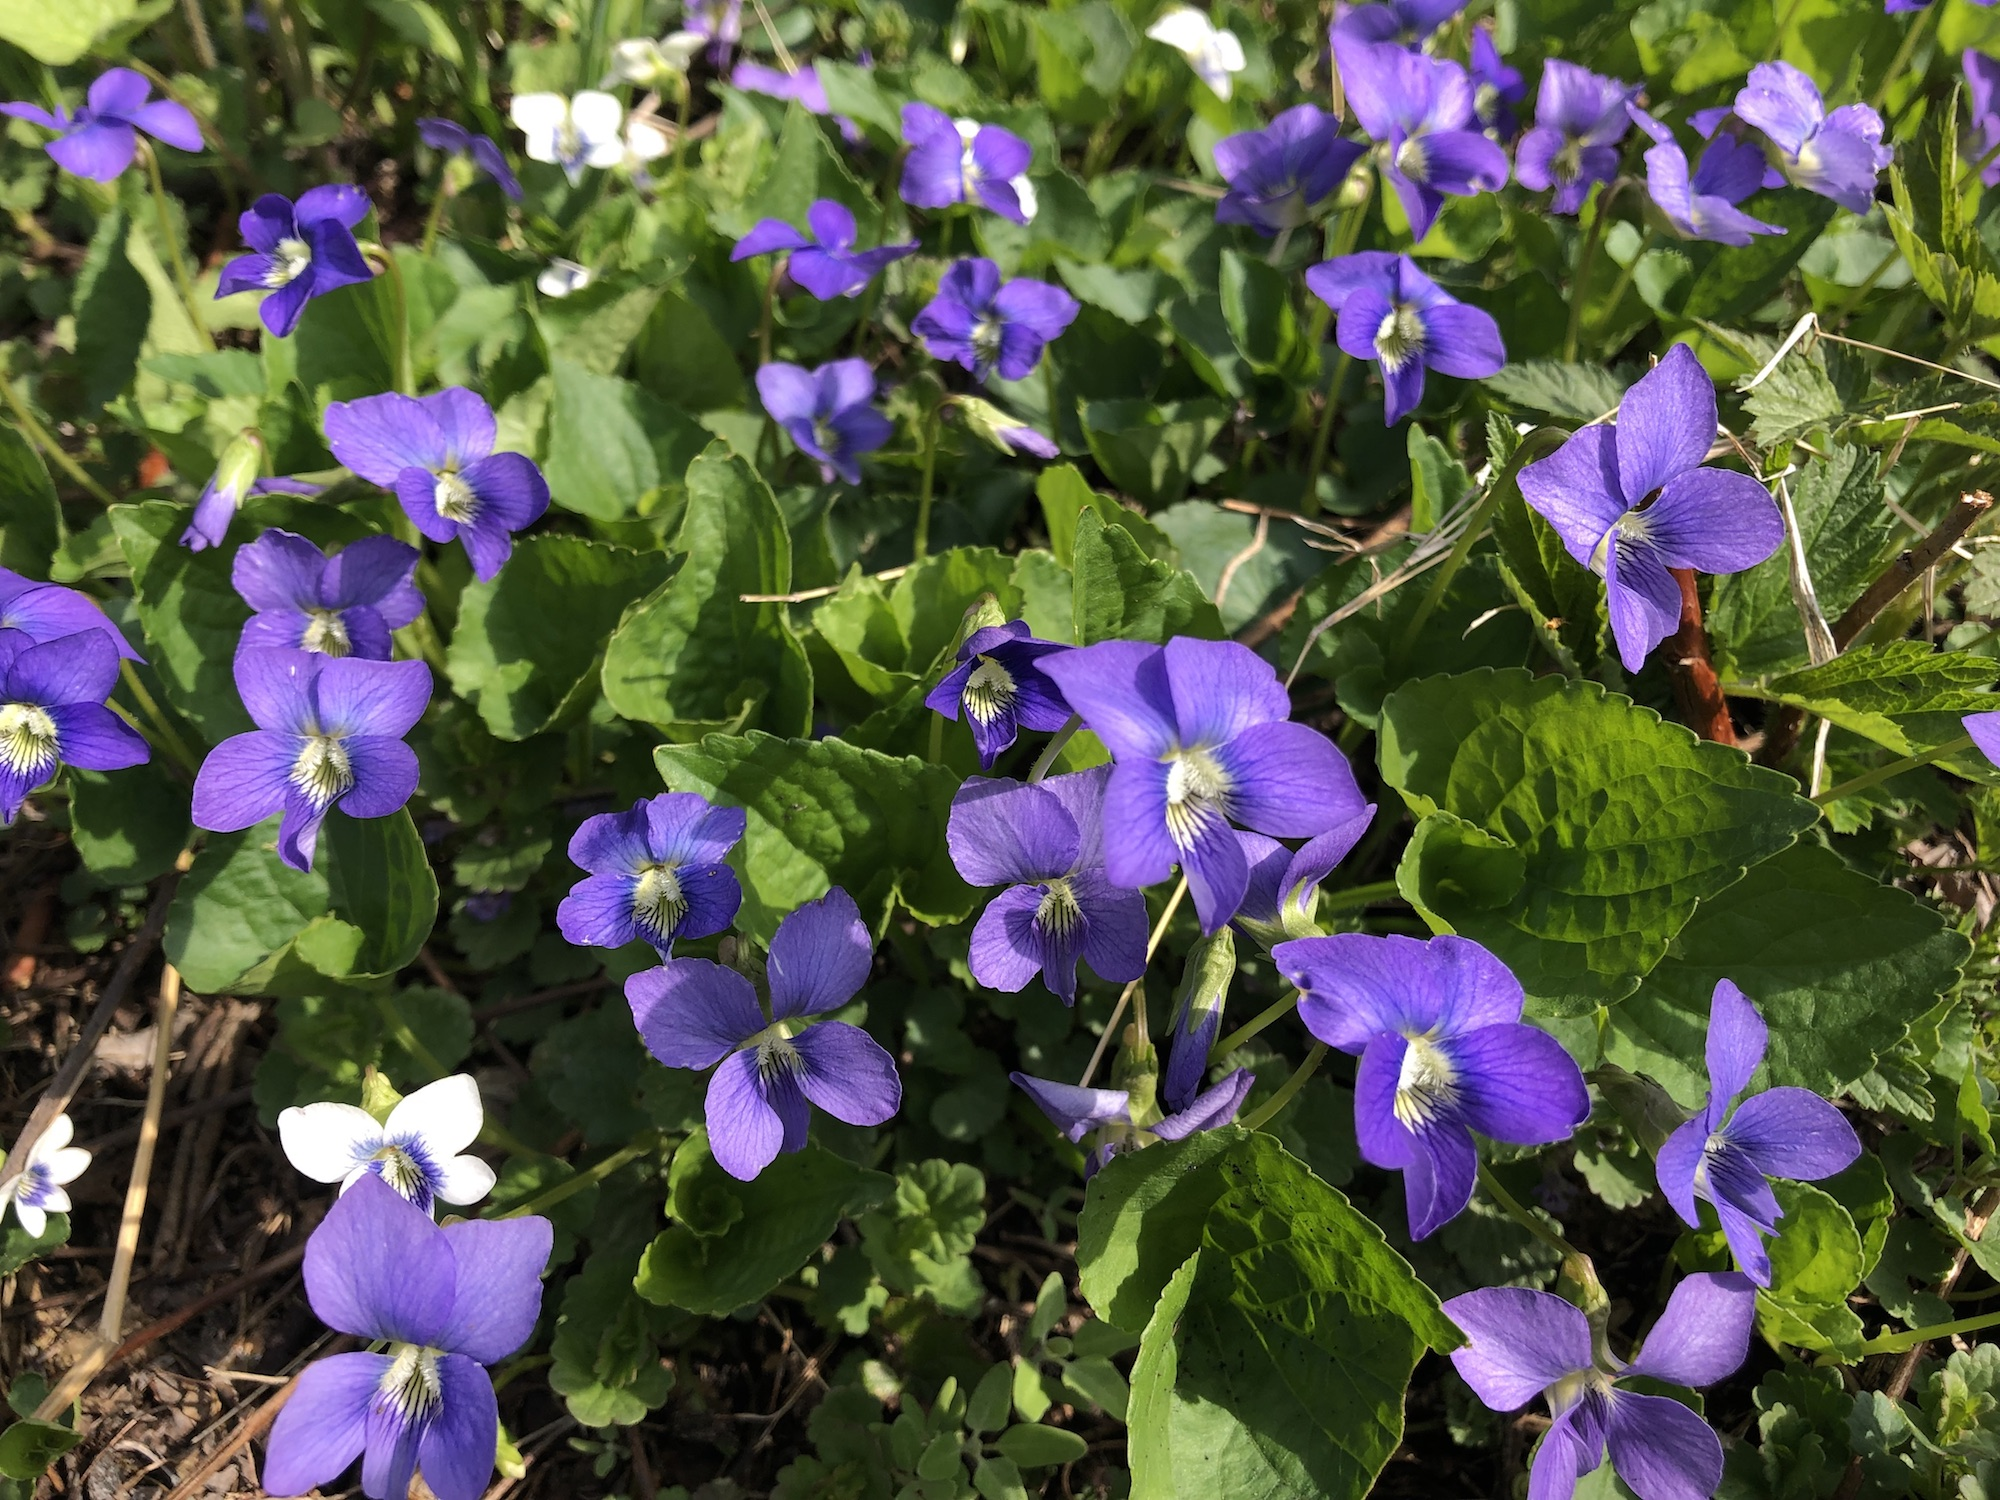 Wood Violets nearthe Duck Pond on April 25, 2019.